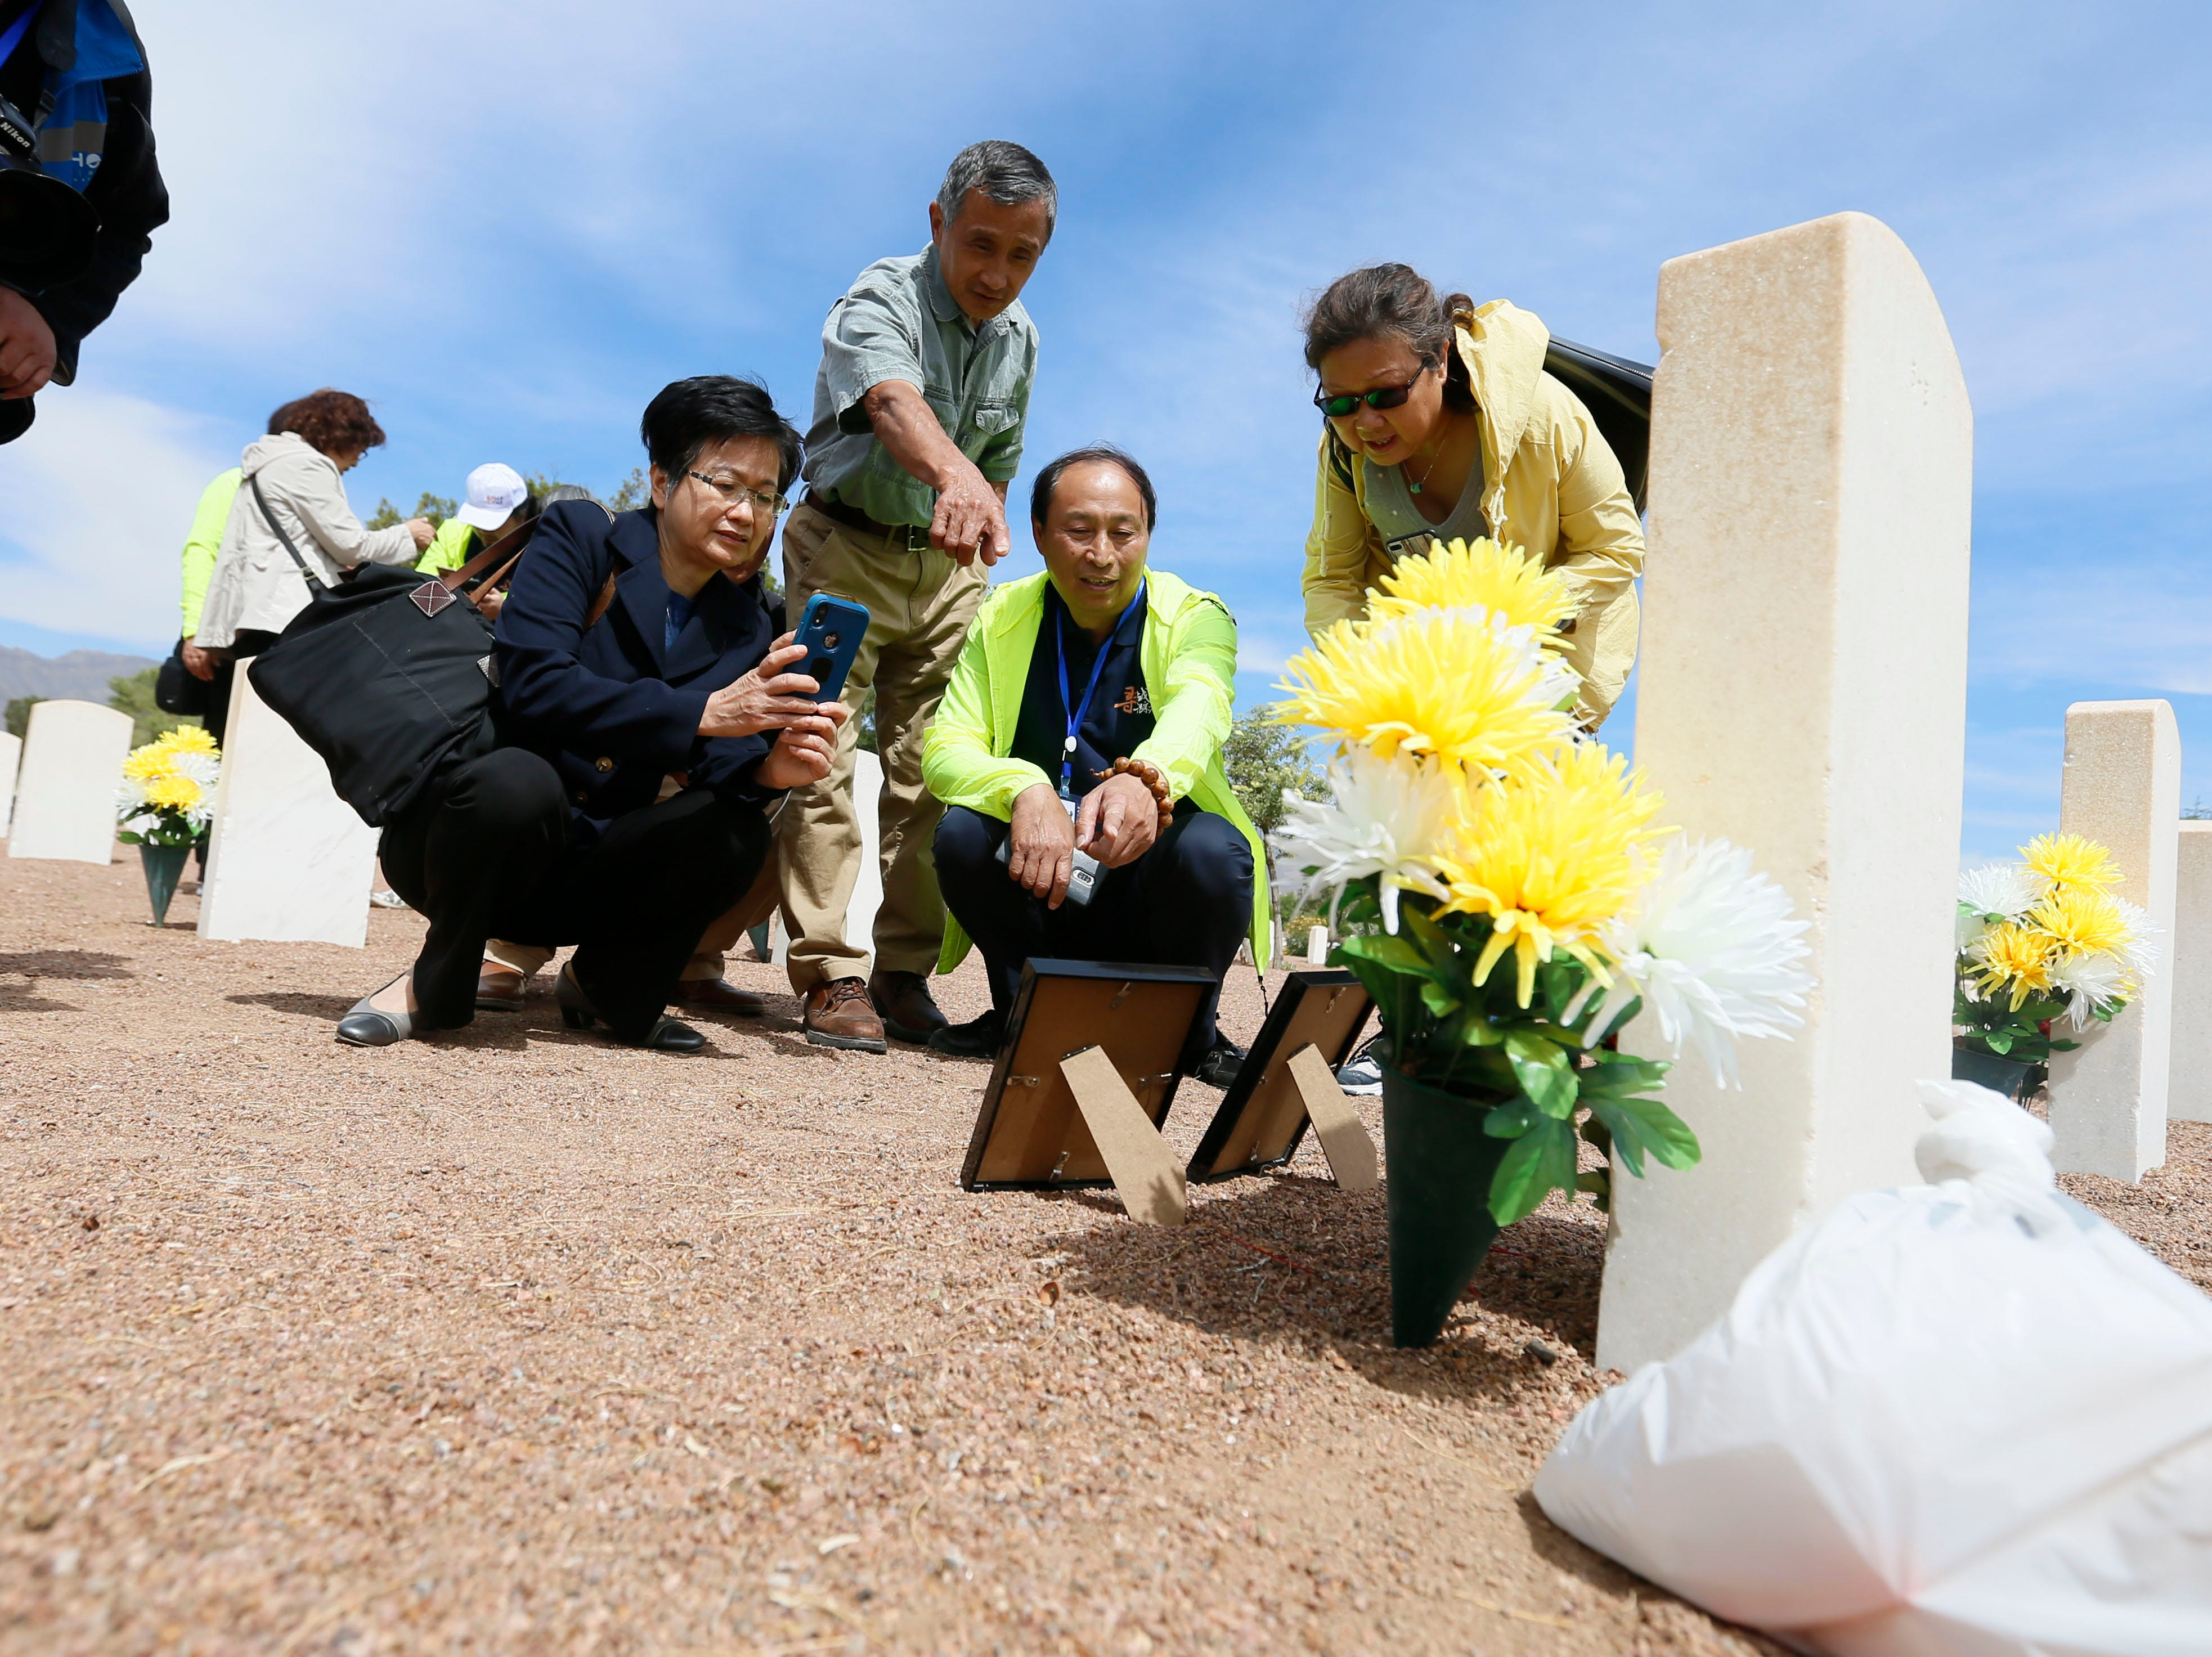 Anita Shing takes a photo on her phone, left, as Feng Zhong, center, shows her a photo of his great uncle Van Shao-Chang next to his burial site Monday, May 13, at Fort Bliss National Cemetery. The Hunan LongYue Peace Charity Development Center brought family members to El Paso to pay a special remembrance to their relatives who are amongst the 52 Chinese pilots who died in the U.S. during flight training in World War II.